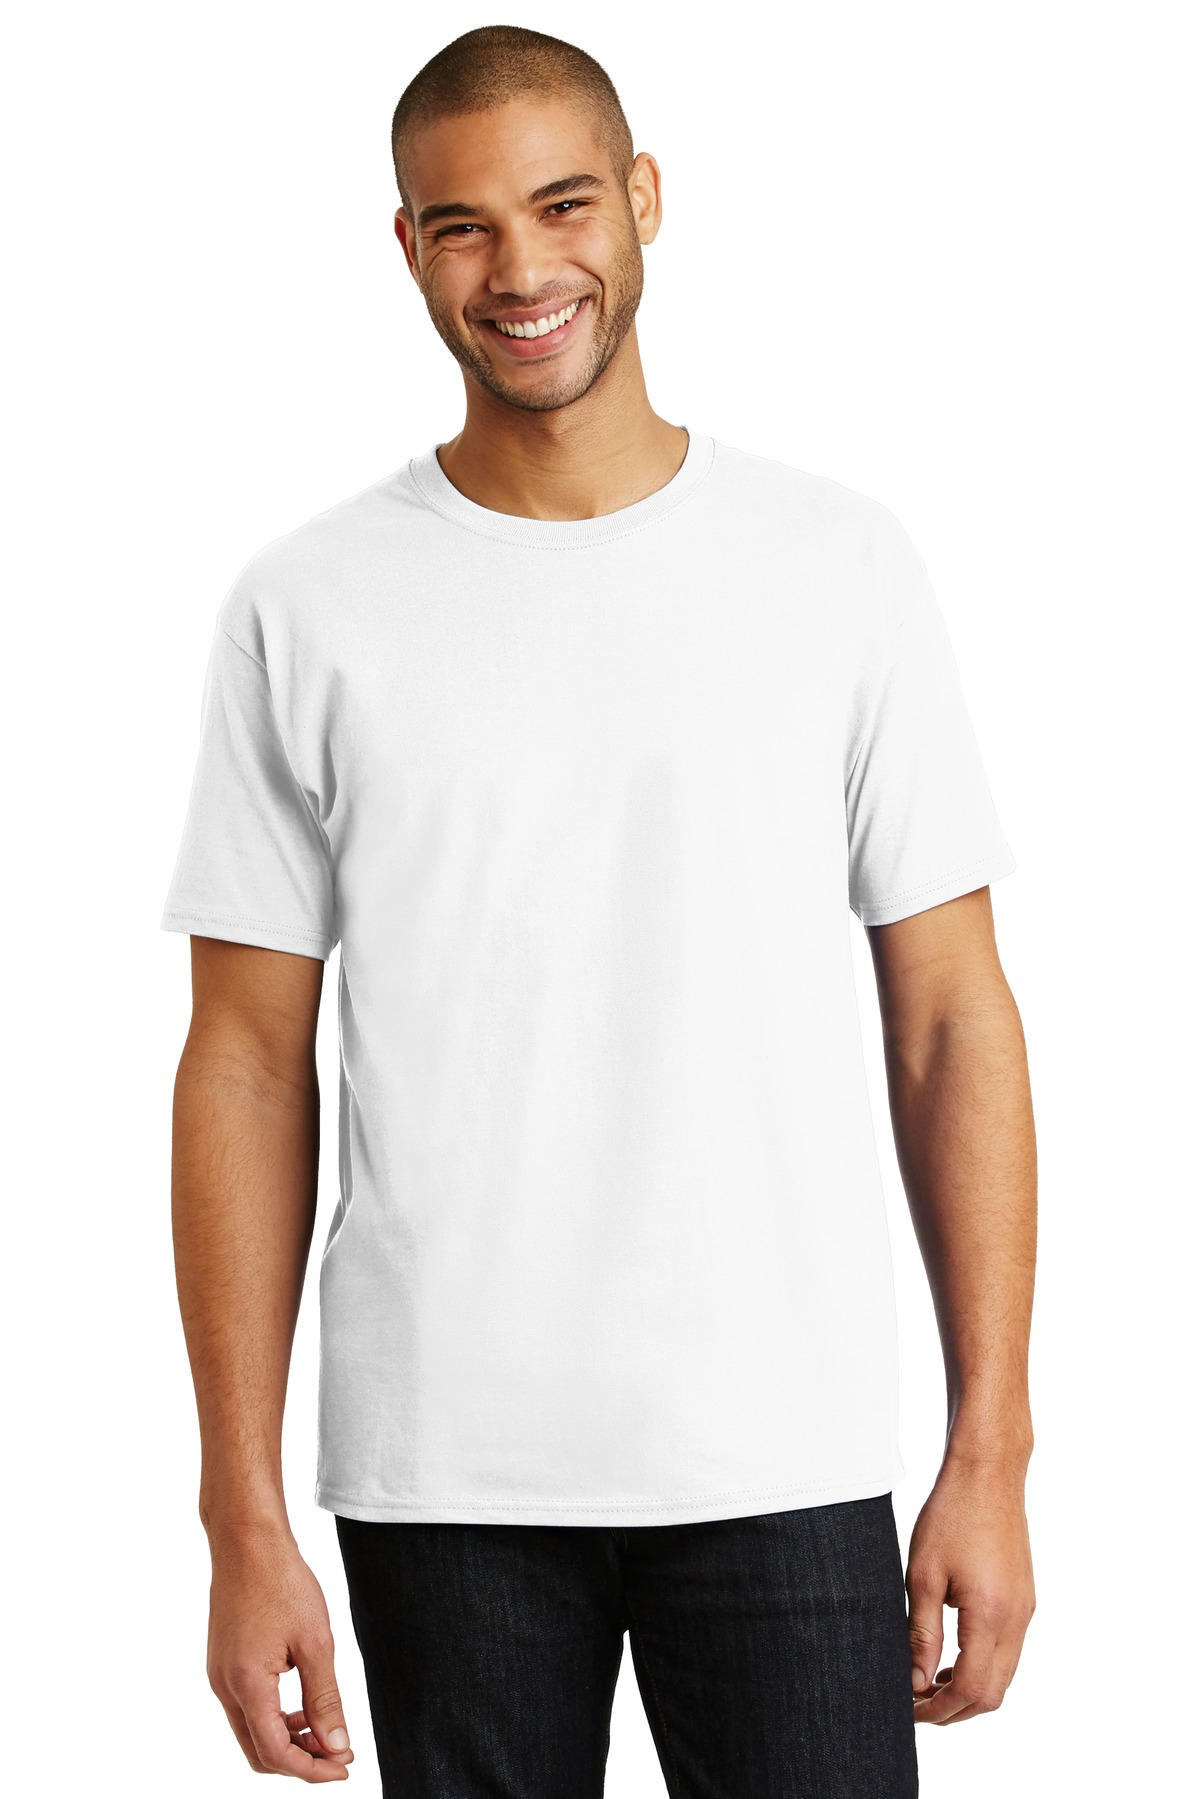 Hanes ®  - Tagless ®  100% Cotton T-Shirt.  5250 - White